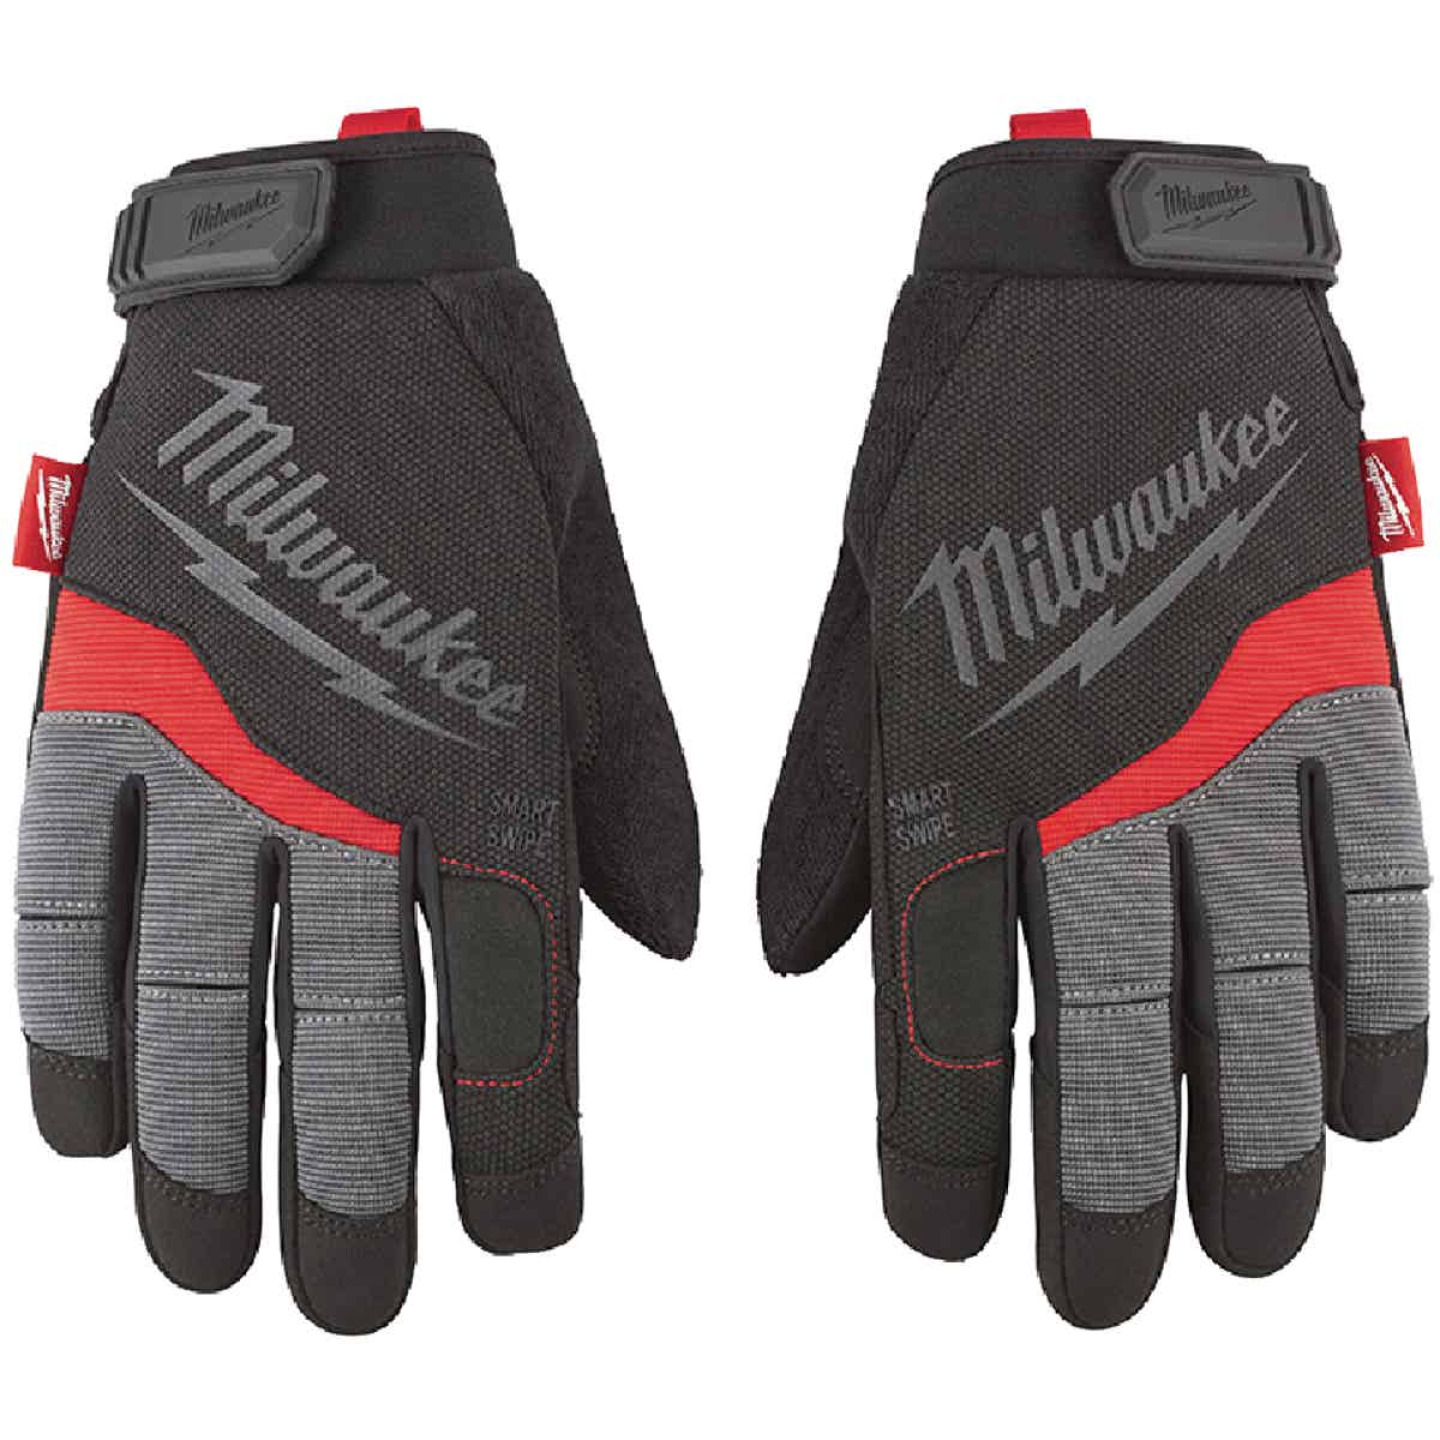 Milwaukee Performance Men's Medium Synthetic Work Glove Image 4